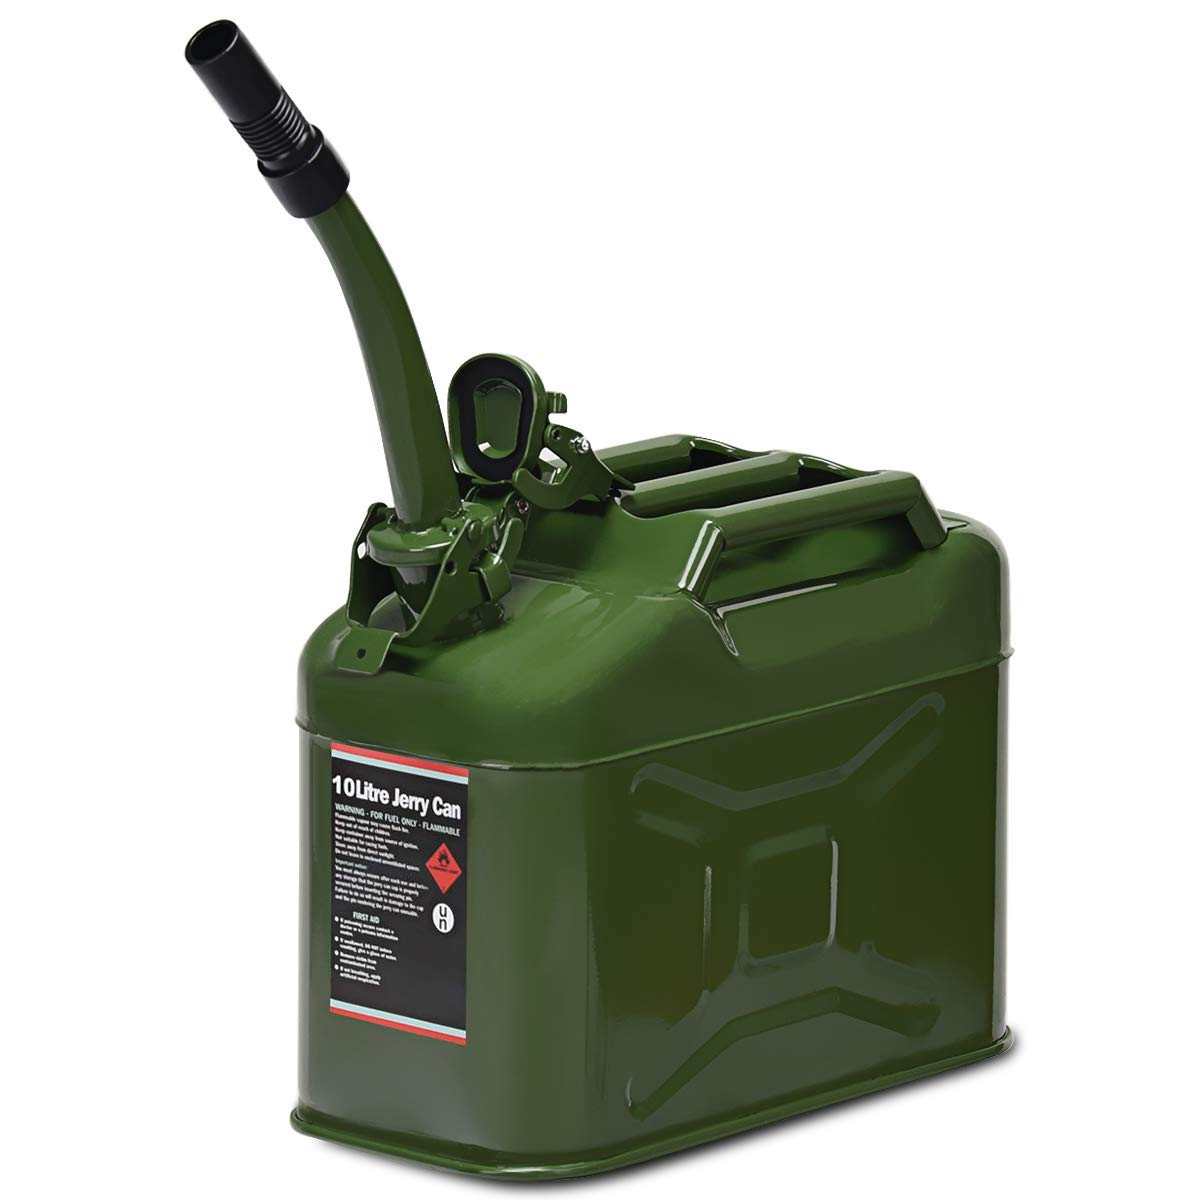 Goplus 10 Liter (2.5 Gallon) Jerry Fuel Can with Flexible Spout, Portable Jerry Can Fuel Tank Steel Fuel Can, Fuels Gasoline Cars, Trucks, Equipment (Army Green)